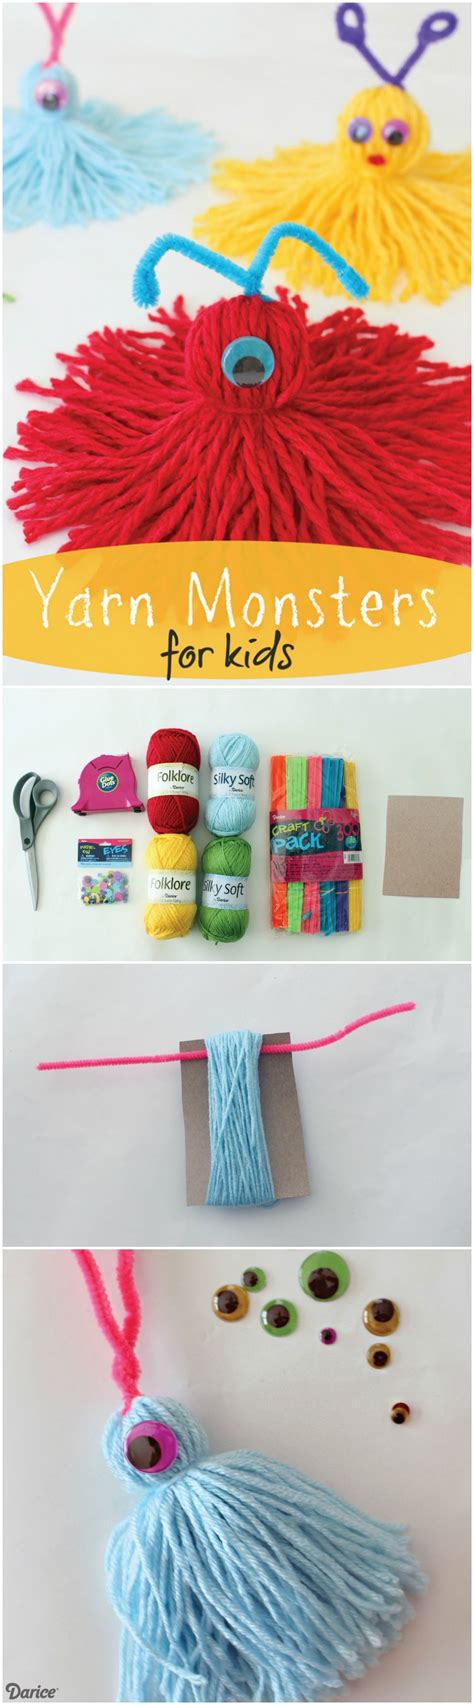 yarn monsters for easy craft tutorial darice 466 | 2644362b4e7515165601d8a1741bc2a6